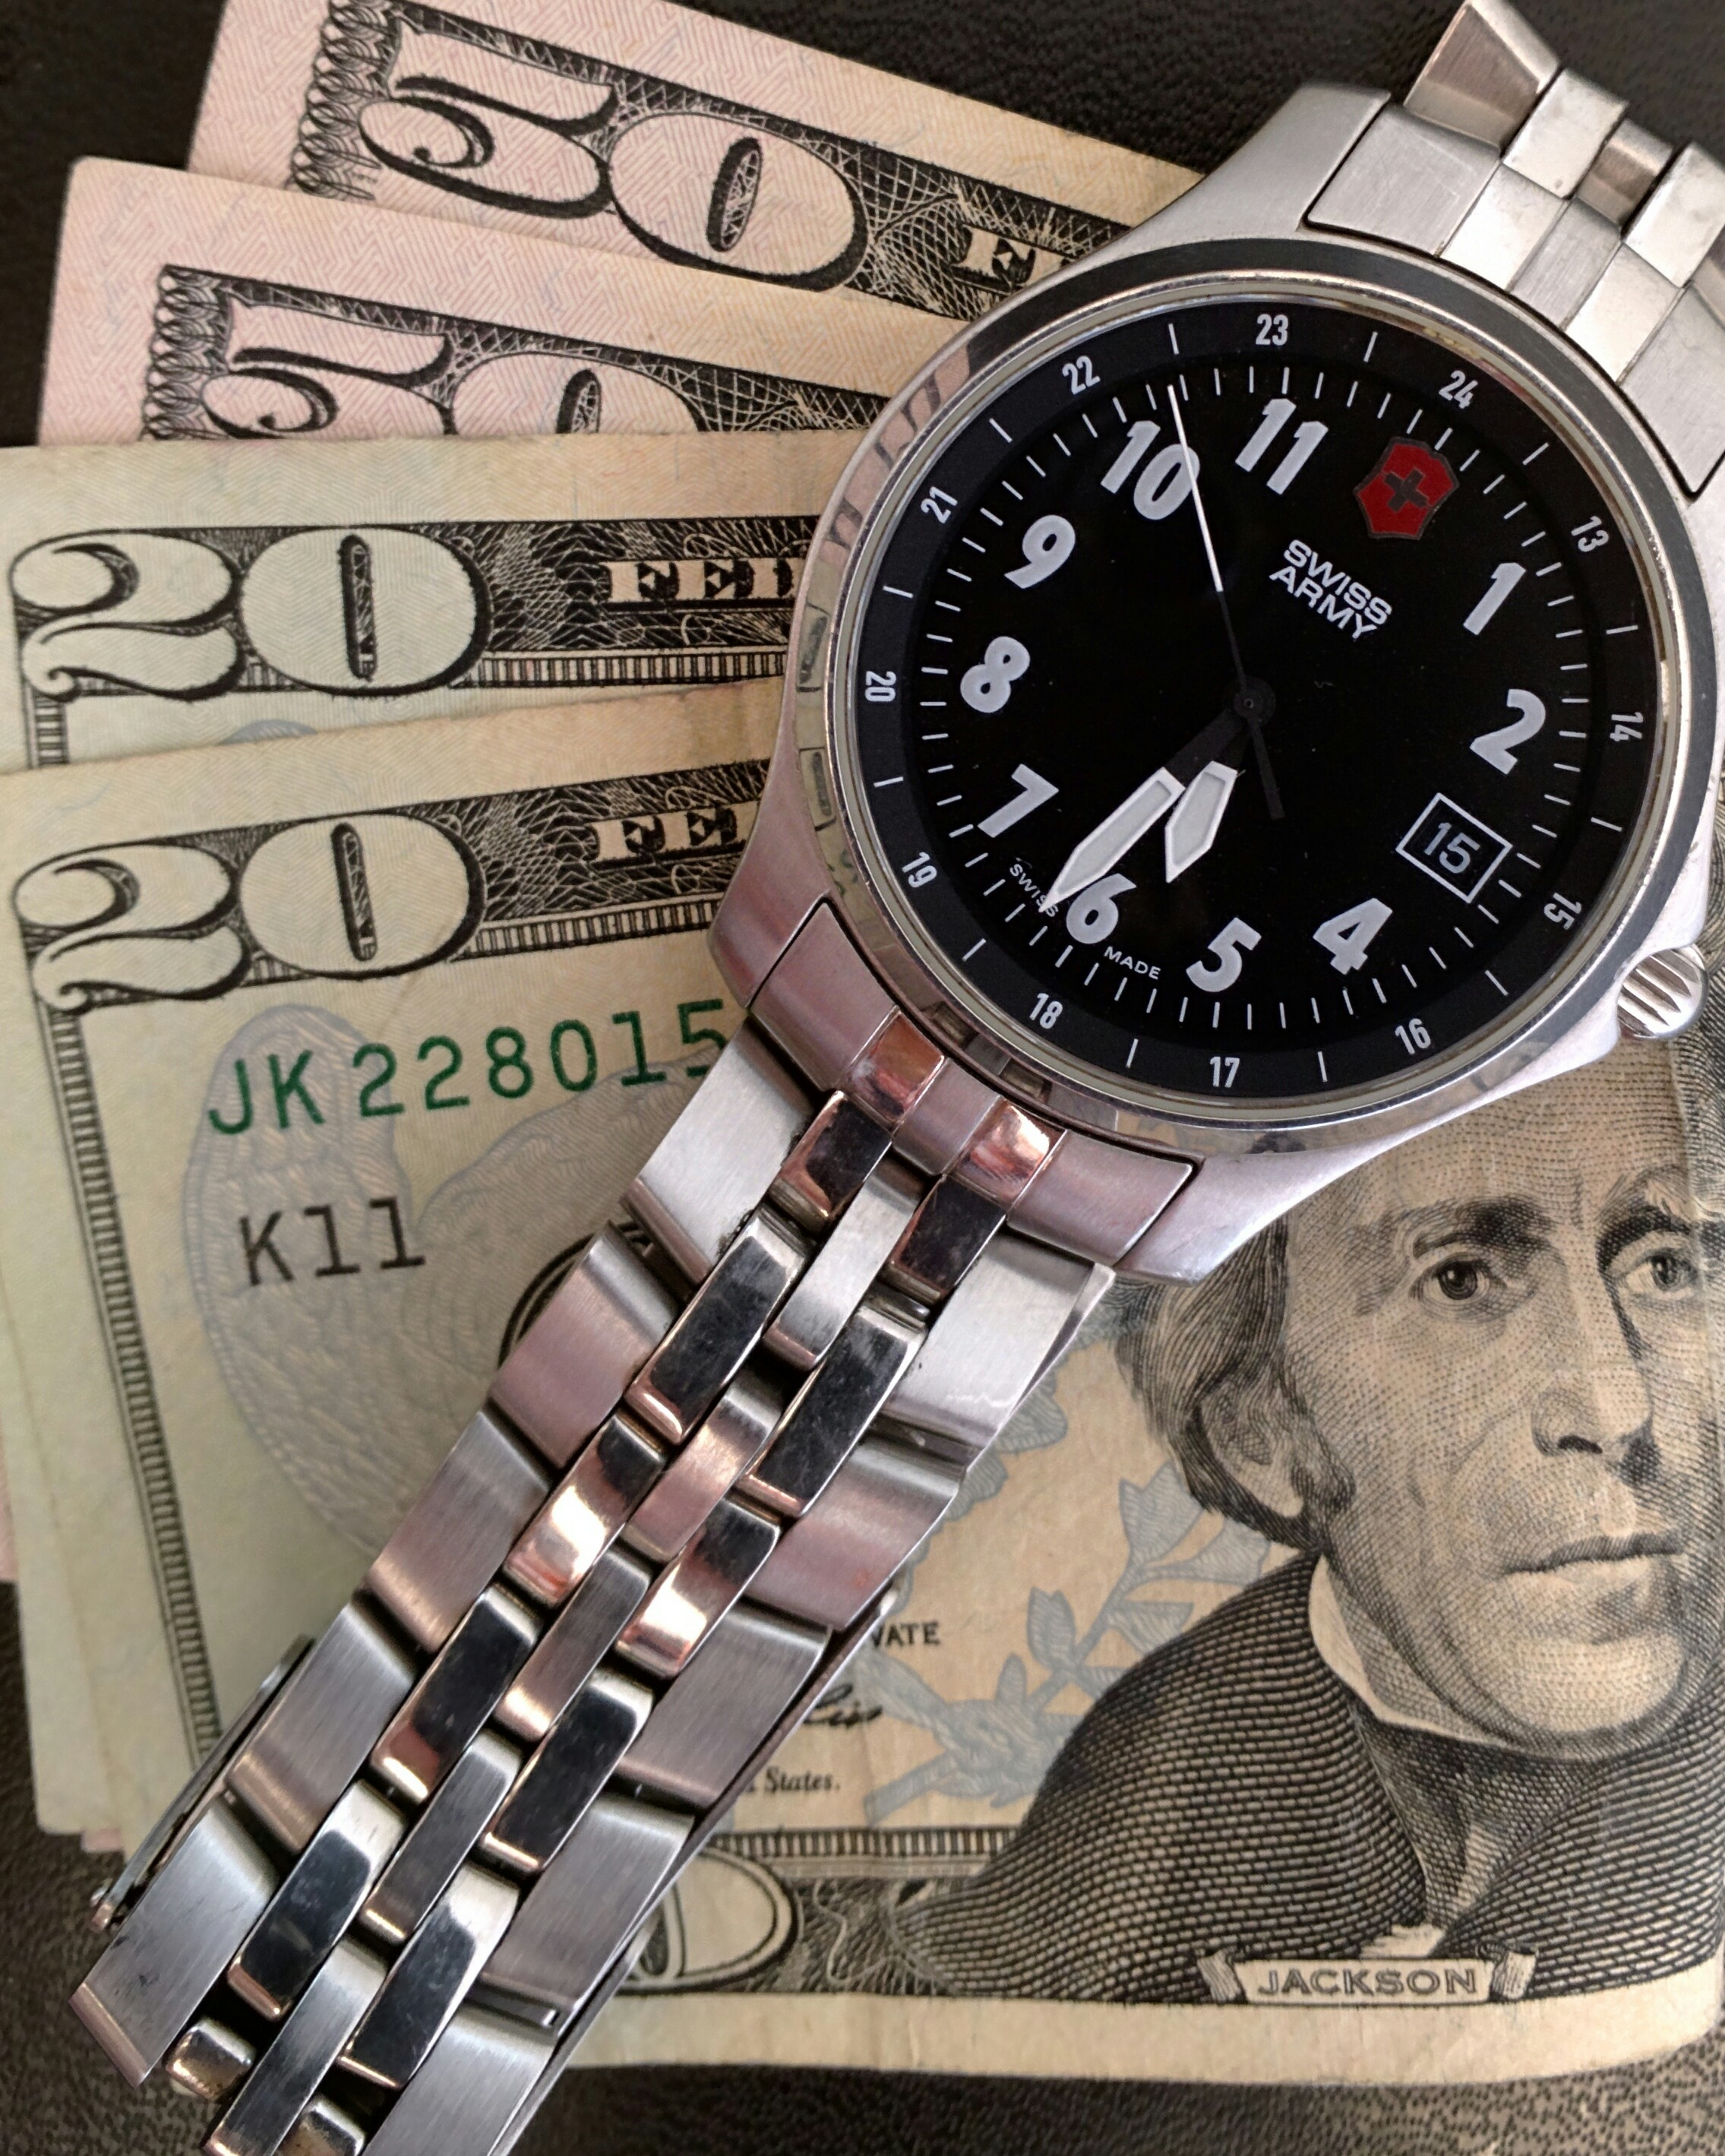 Watch Battery Replacement Cost